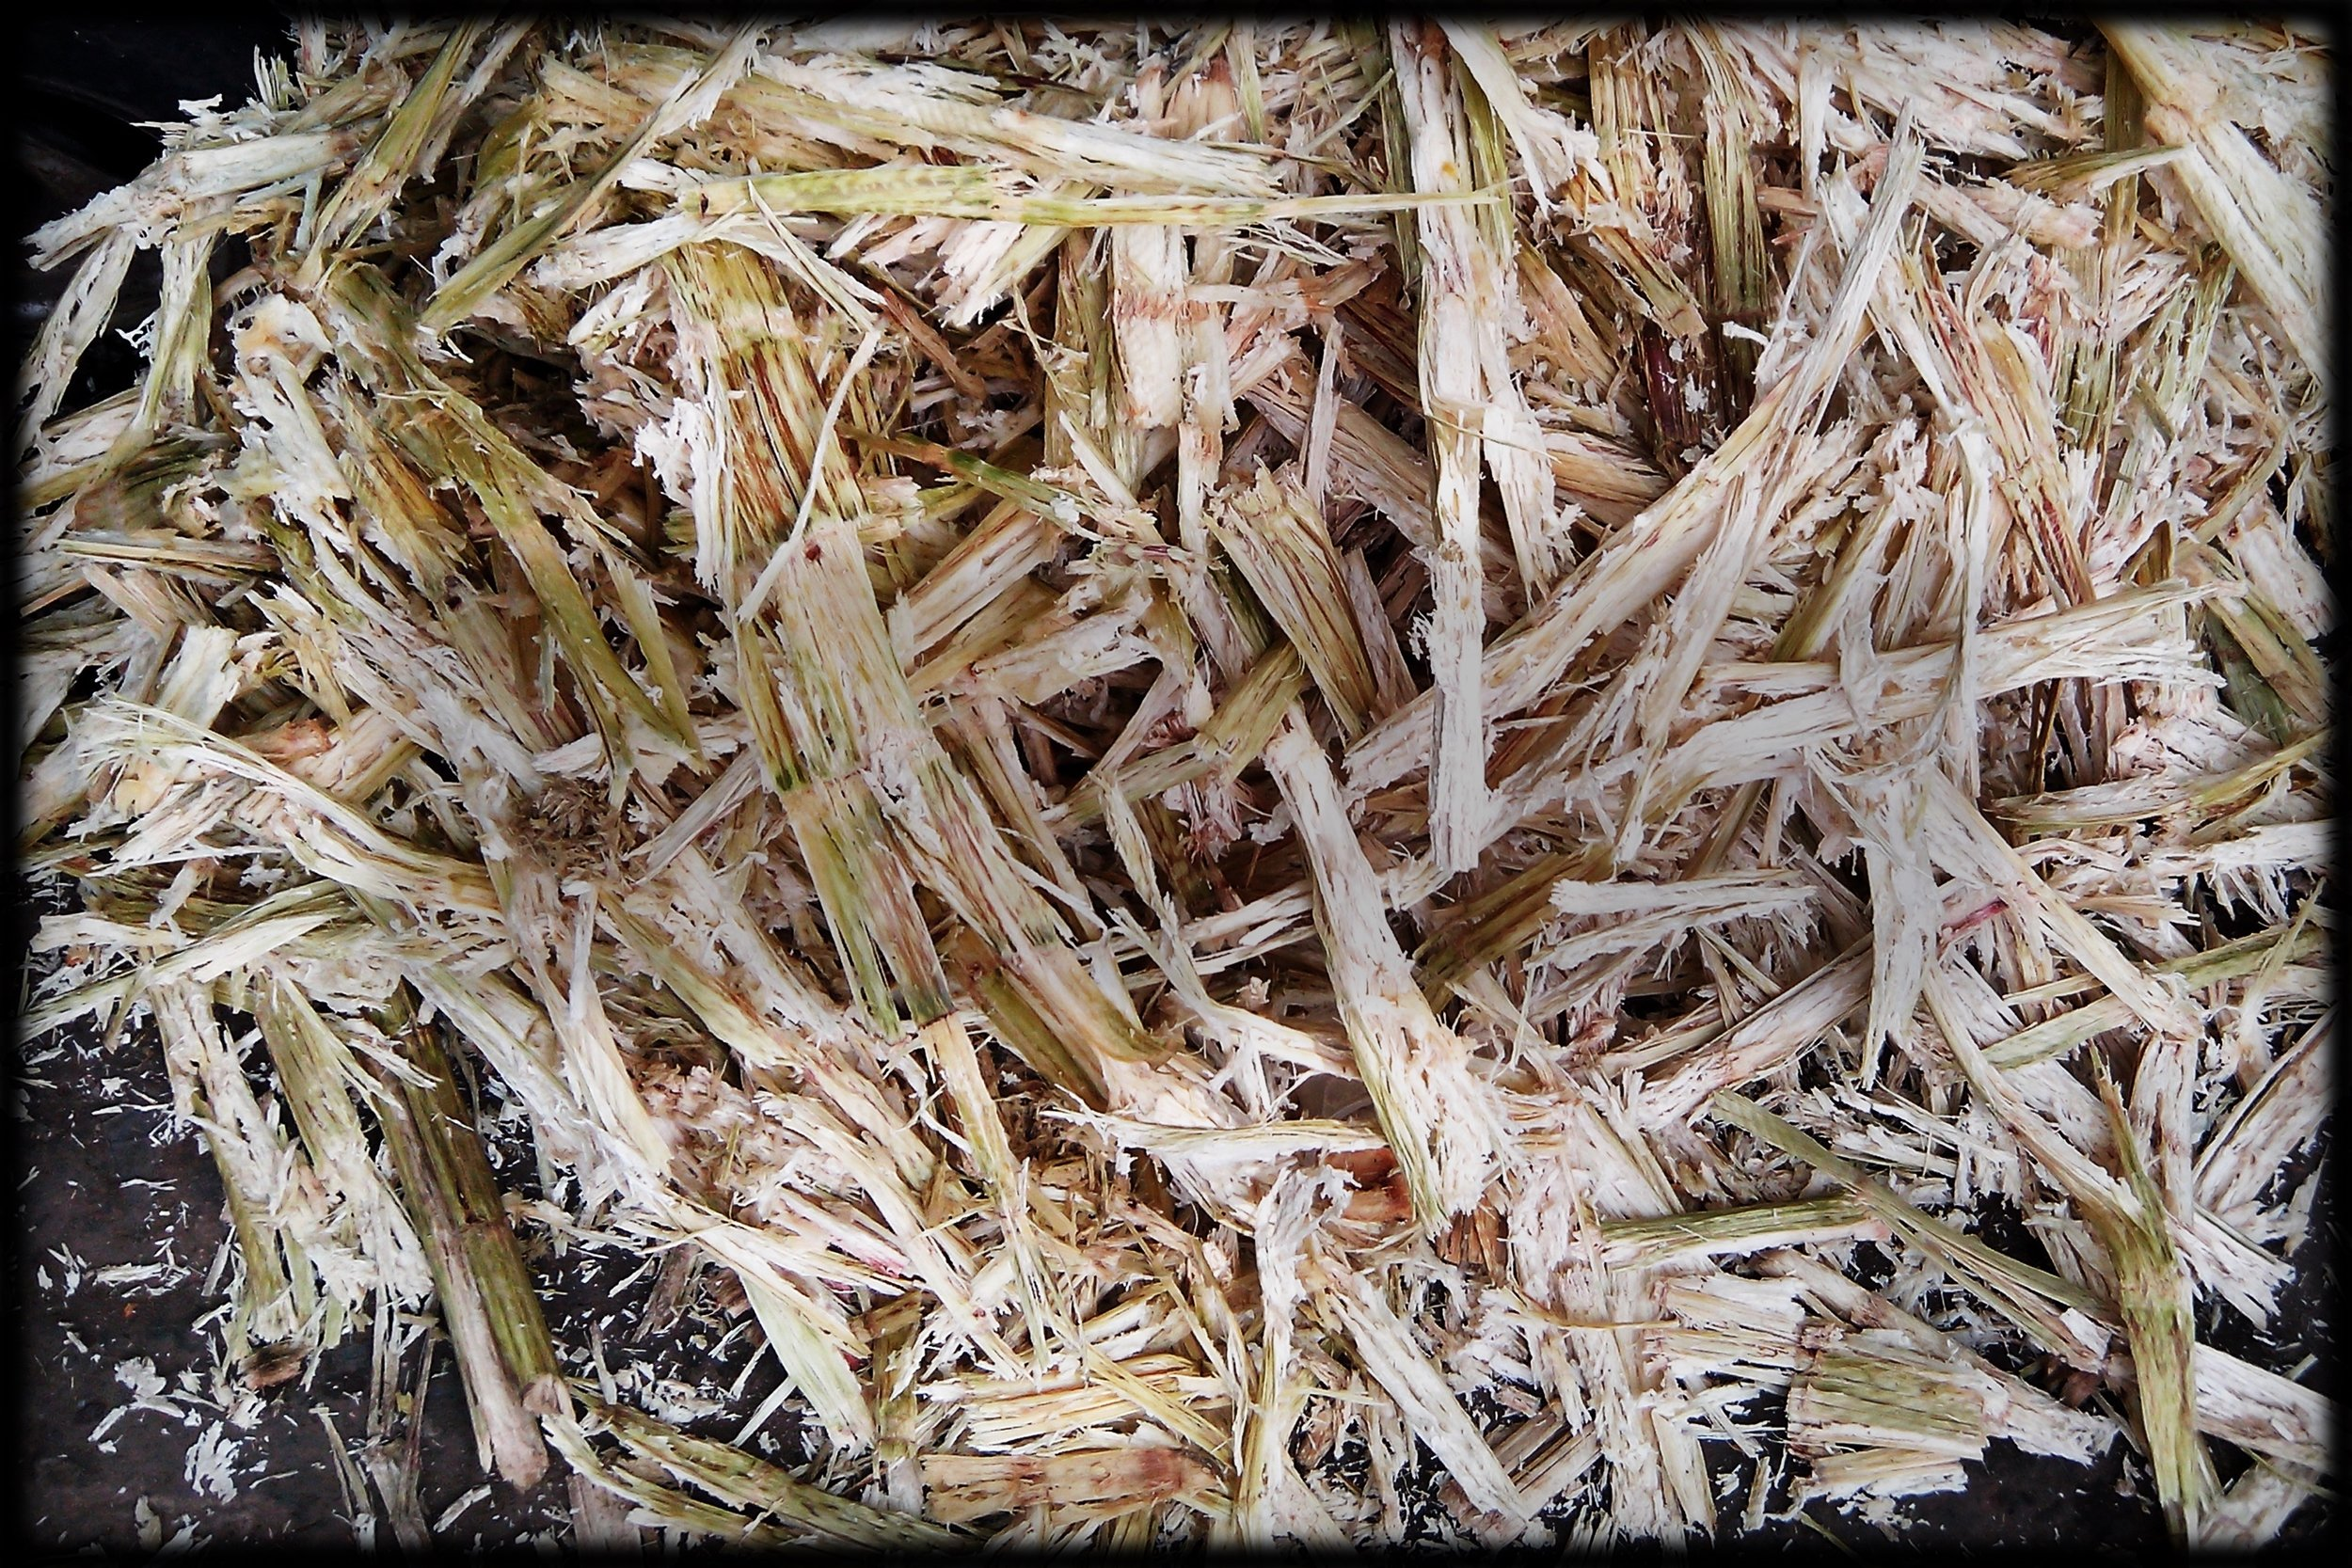 TRANSFORM WASTE TO A VALUABLE PRODUCT - Several industries can now make a profit from their unused resources.Both bagasse (crushed sugar canes) and other plants can be used as rawmaterial for NextFuel. Surplus products are converted into valuable fuel.